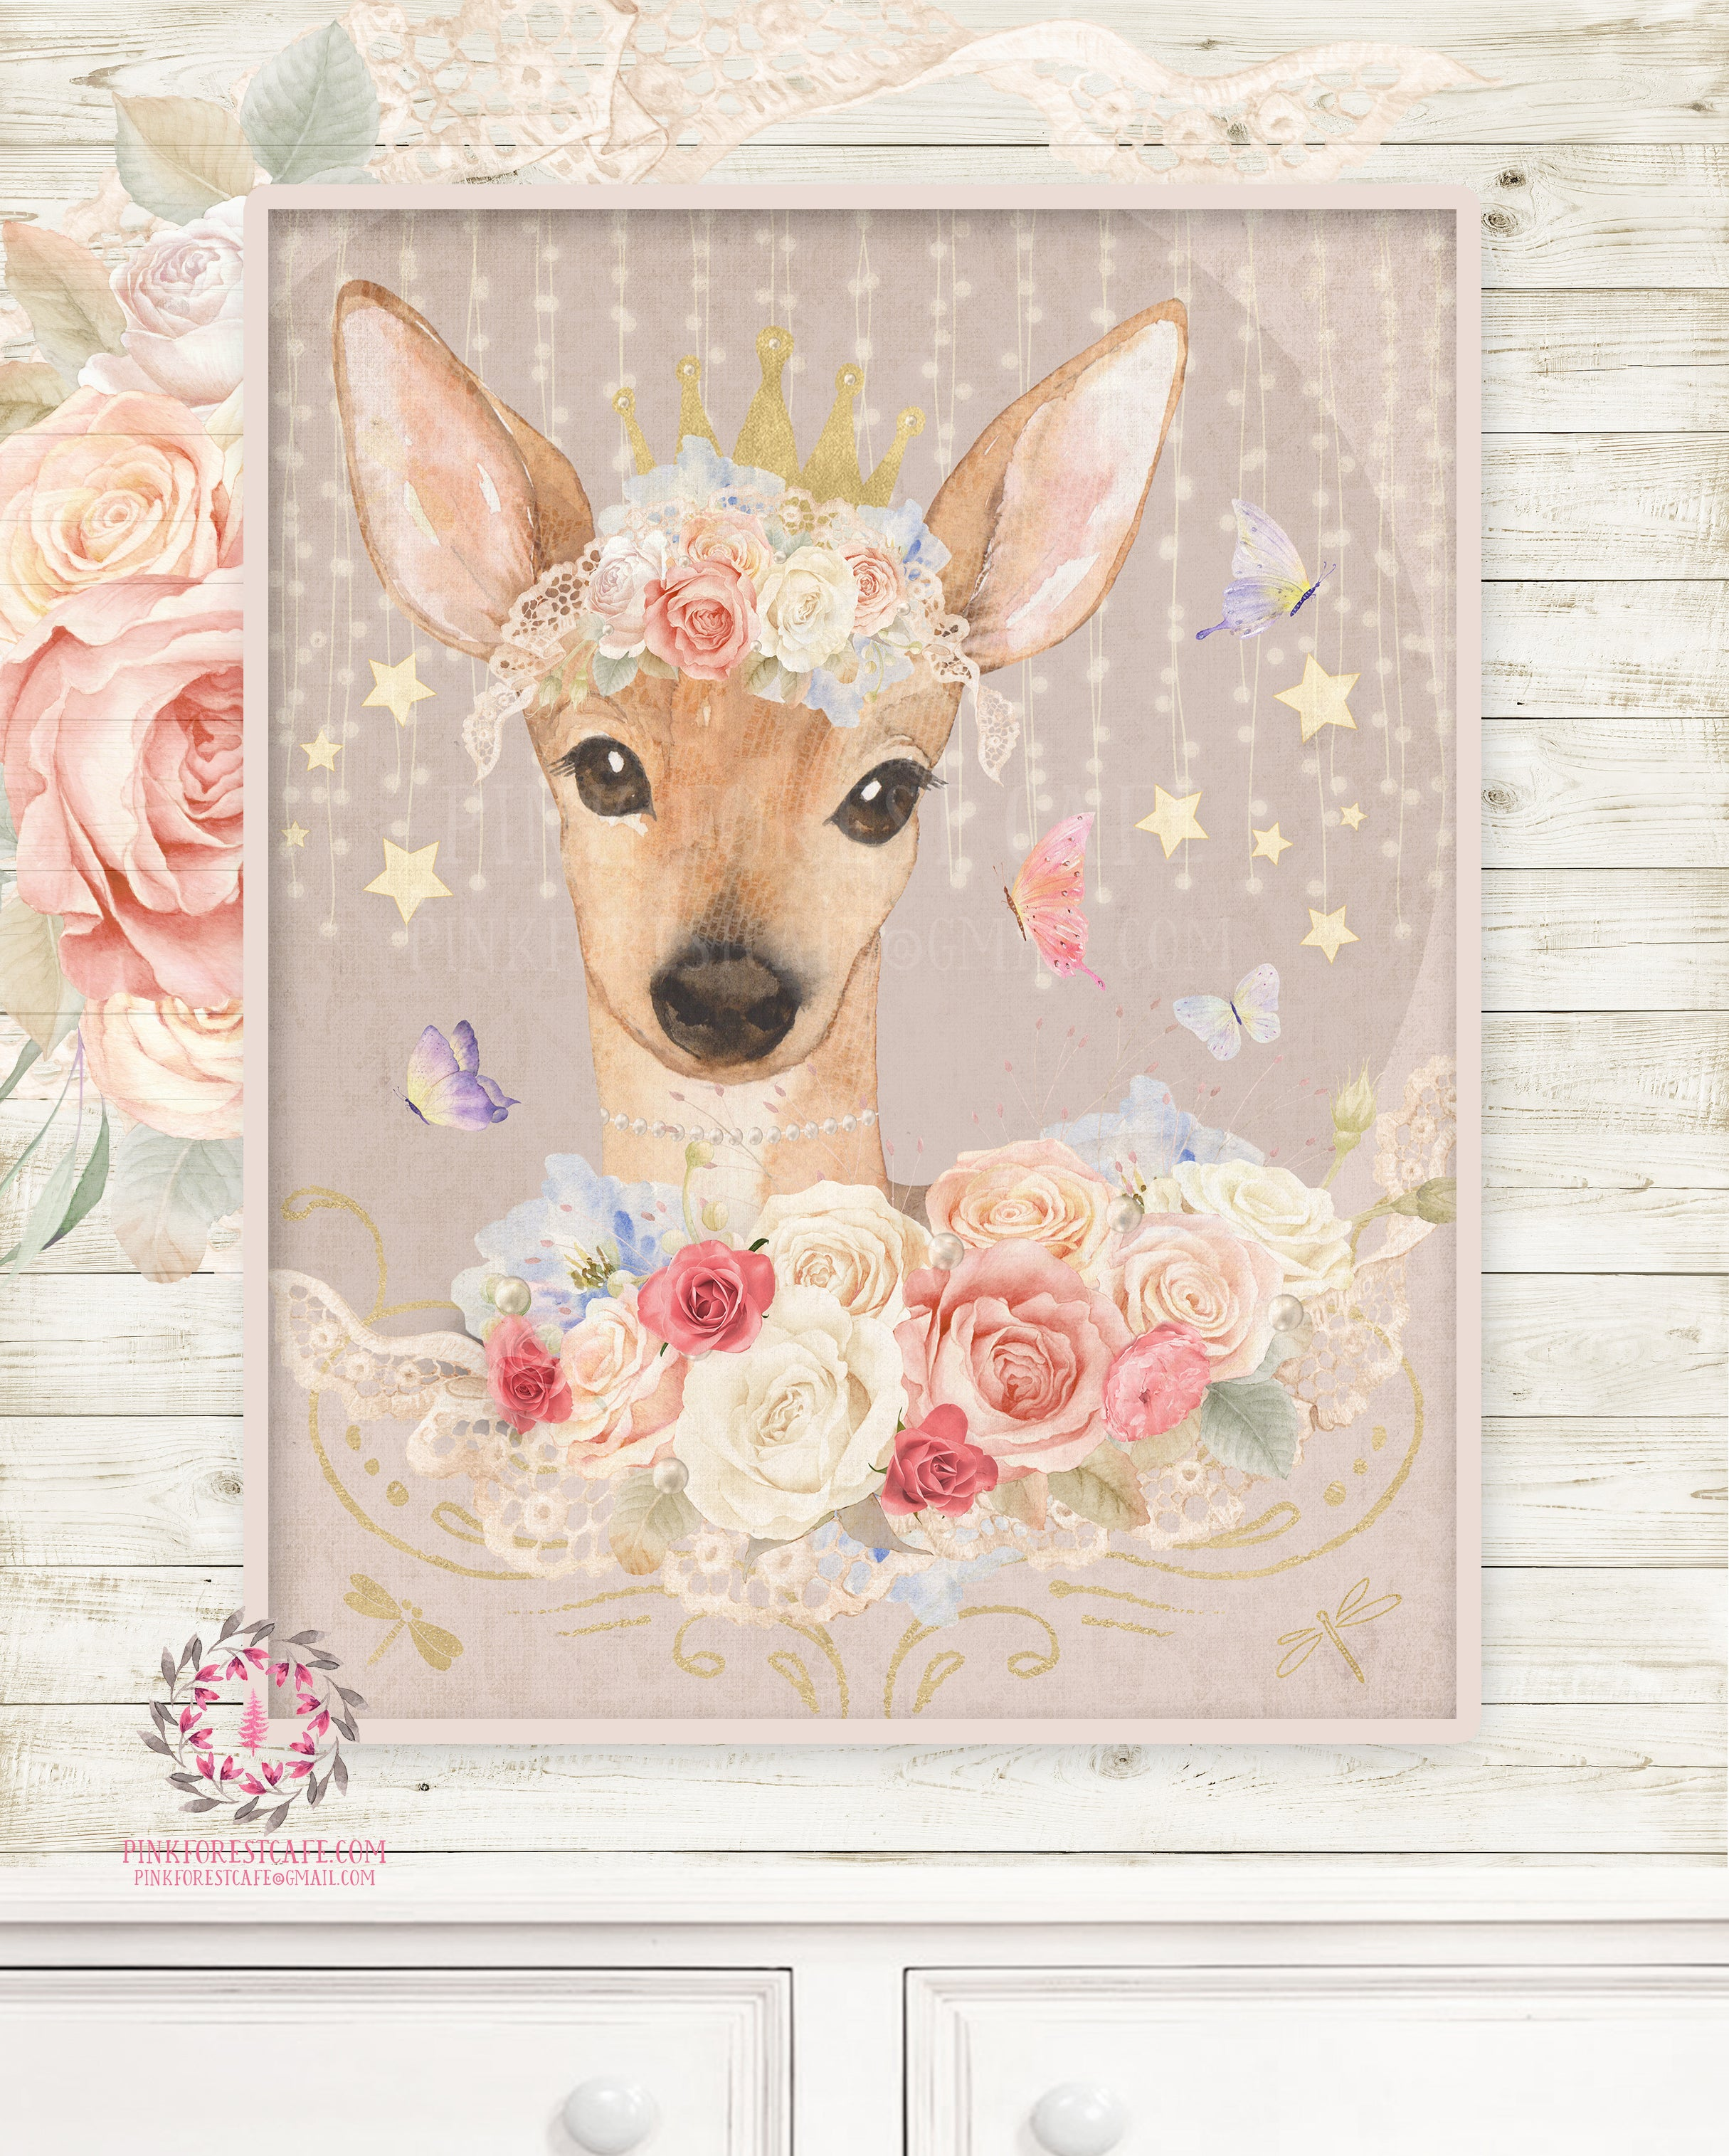 Ethereal Fiona Fawn Baby Woodland Nursery Wall Art Print Boho Deer Shabby Chic Bohemian Blush Room Kids Bedroom Home Limited Edition Decor